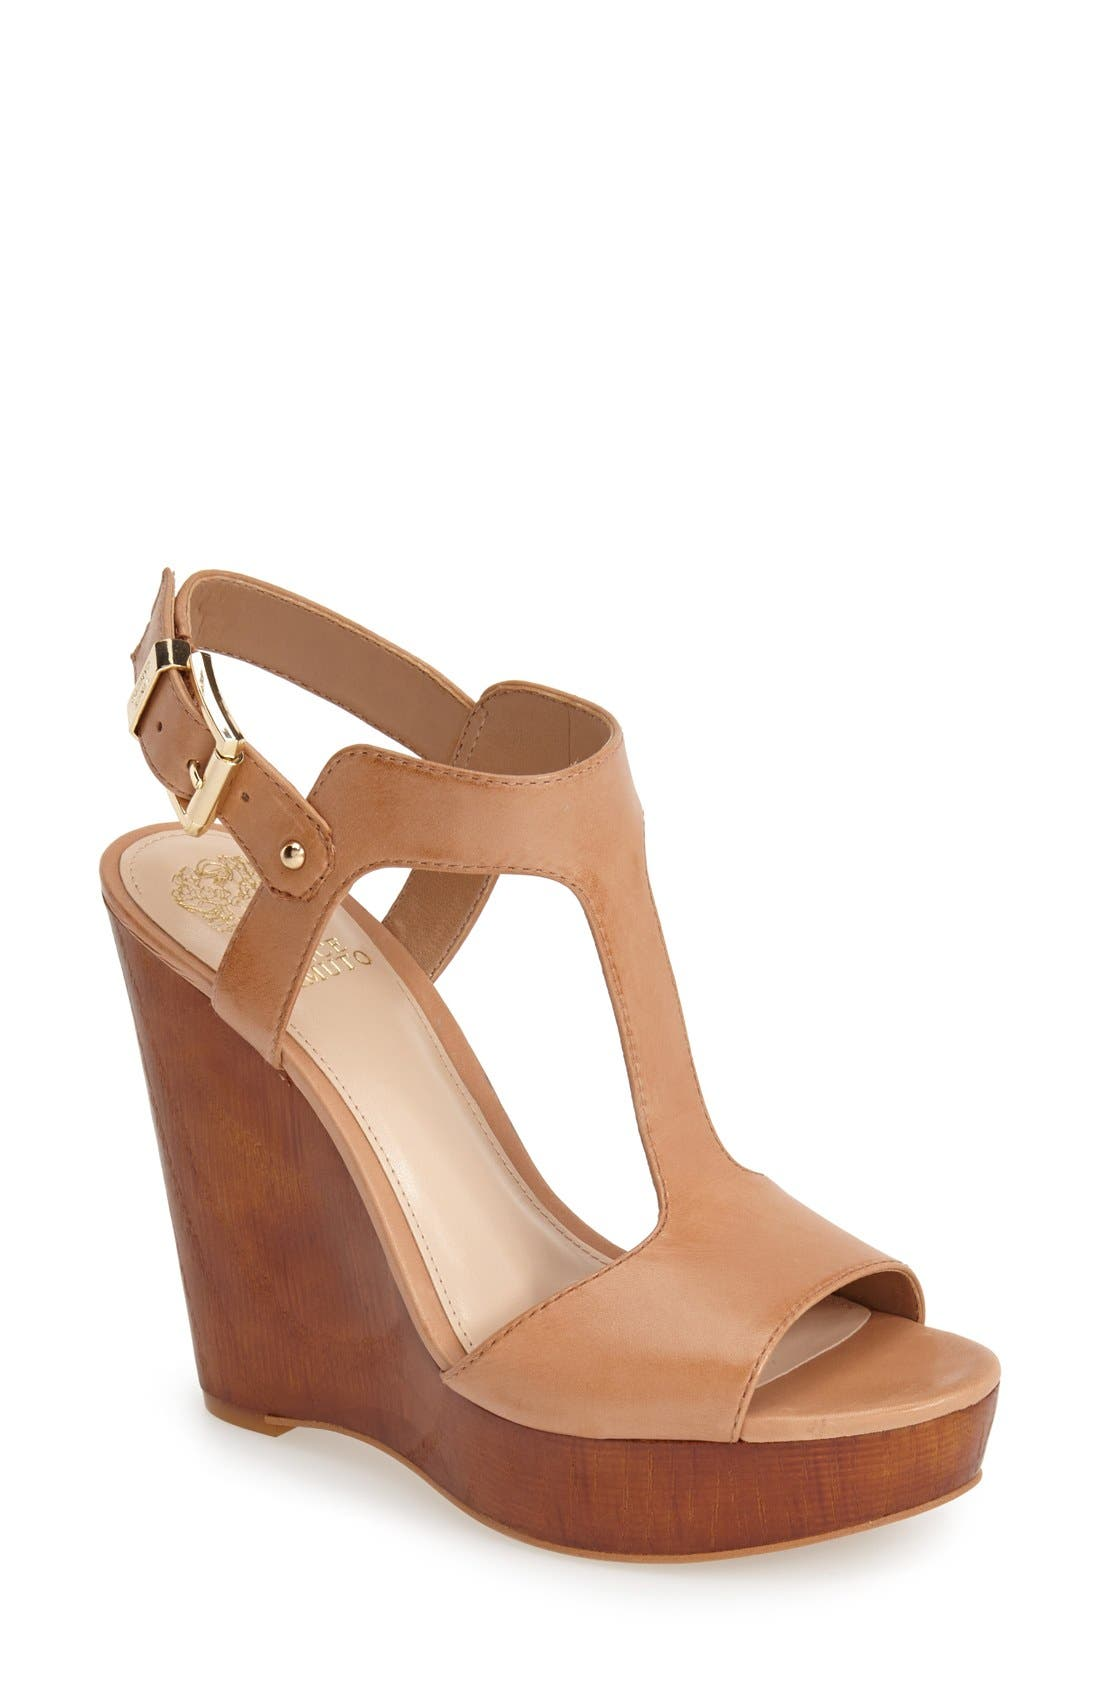 Alternate Image 1 Selected - Vince Camuto 'Mathis' T-Strap Wedge Sandal (Women)